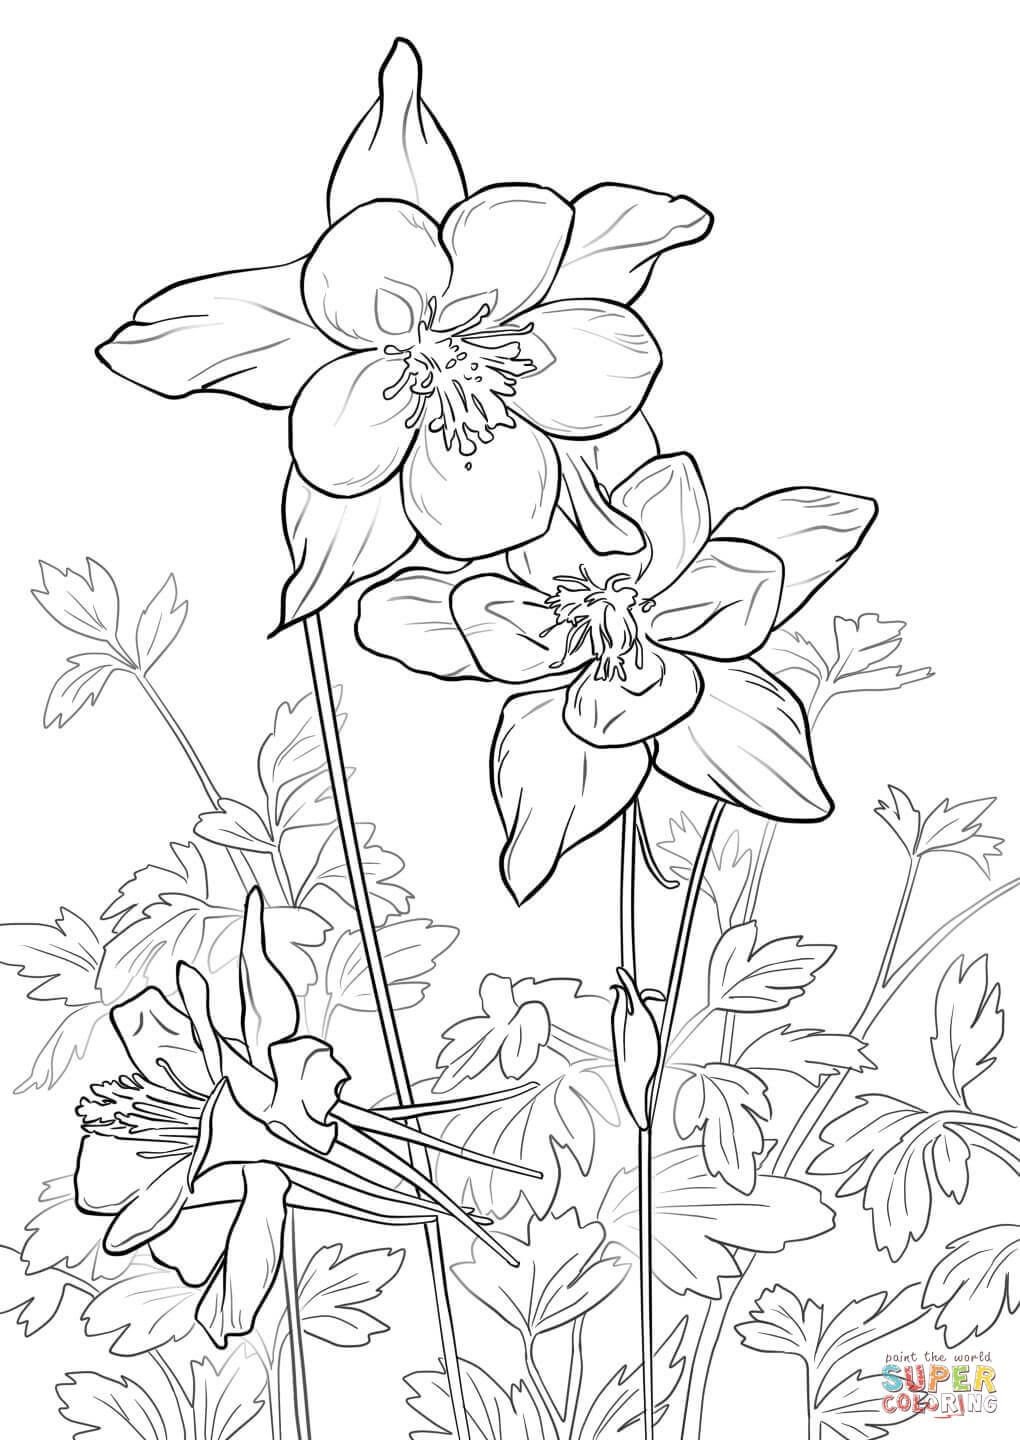 Rocky Mountain Columbine coloring